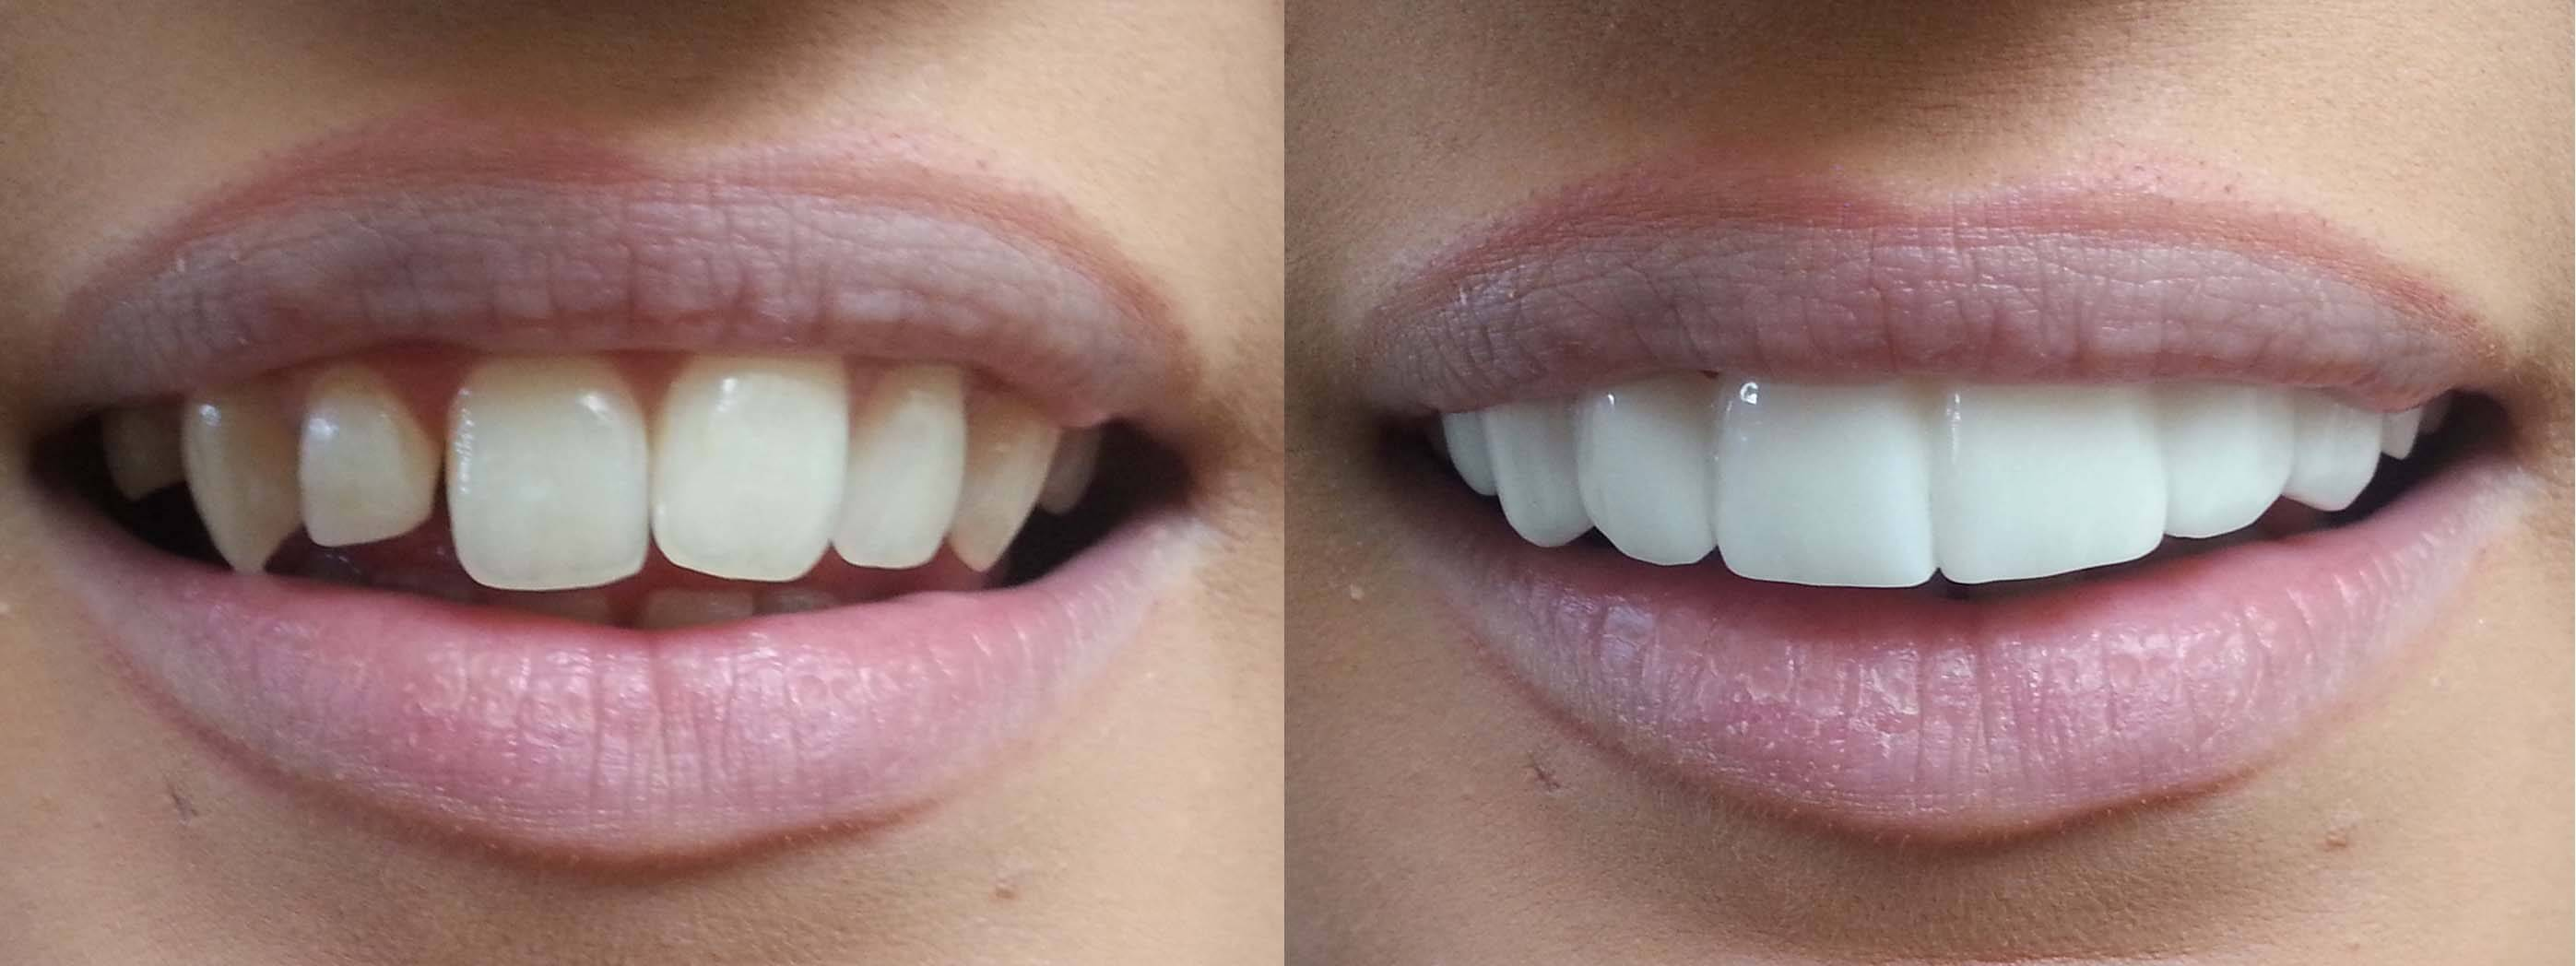 Veneers: What's in a Beautiful Smile? - Hutto Hippo